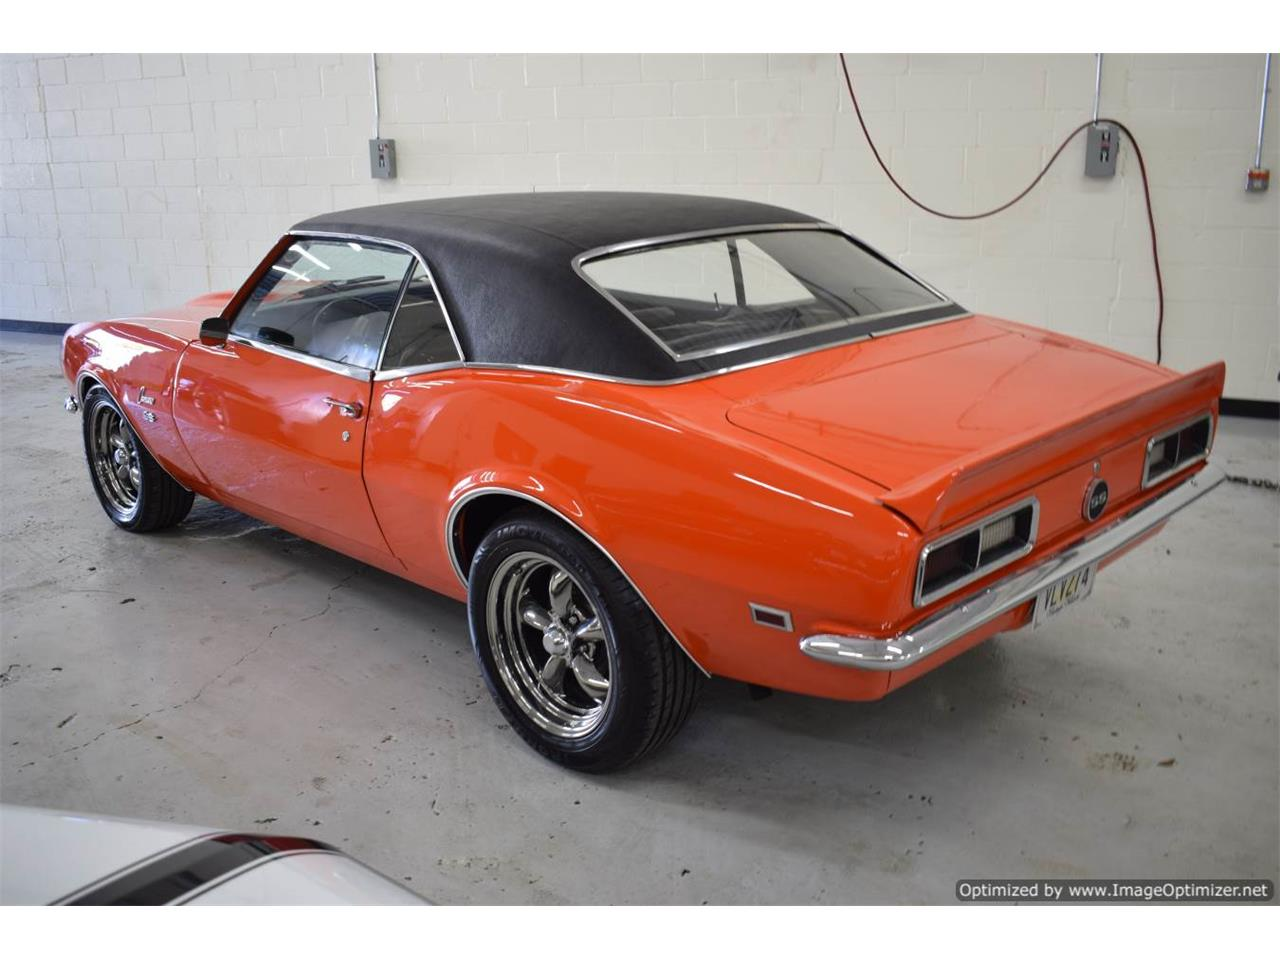 Large Picture of '68 Chevrolet Camaro located in irving Texas - $24,499.00 - OXCH